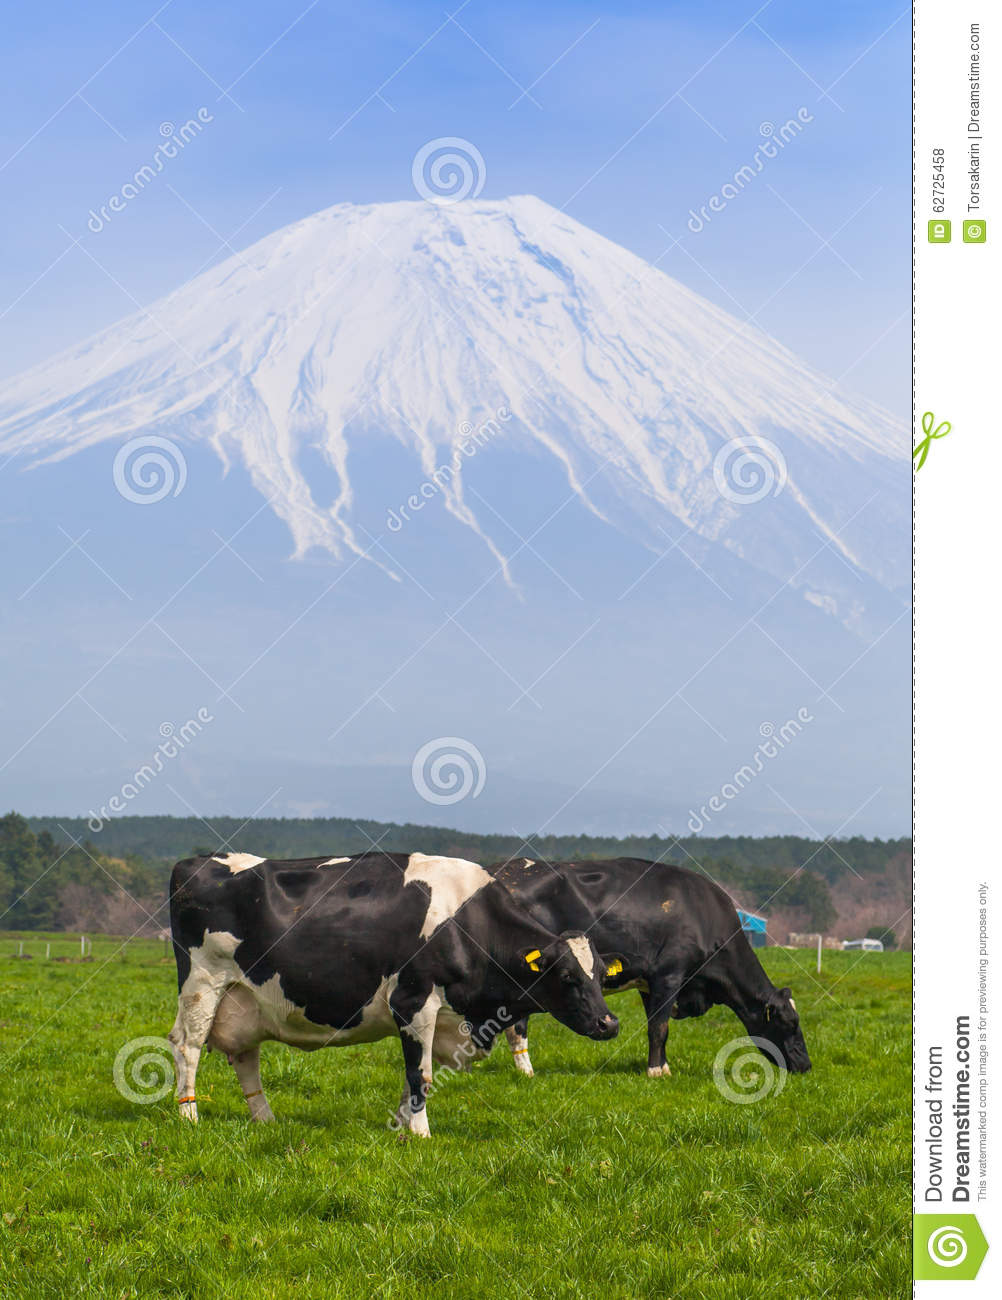 Download Dairy Farm With Mountain Fuji In Background Stock Photo